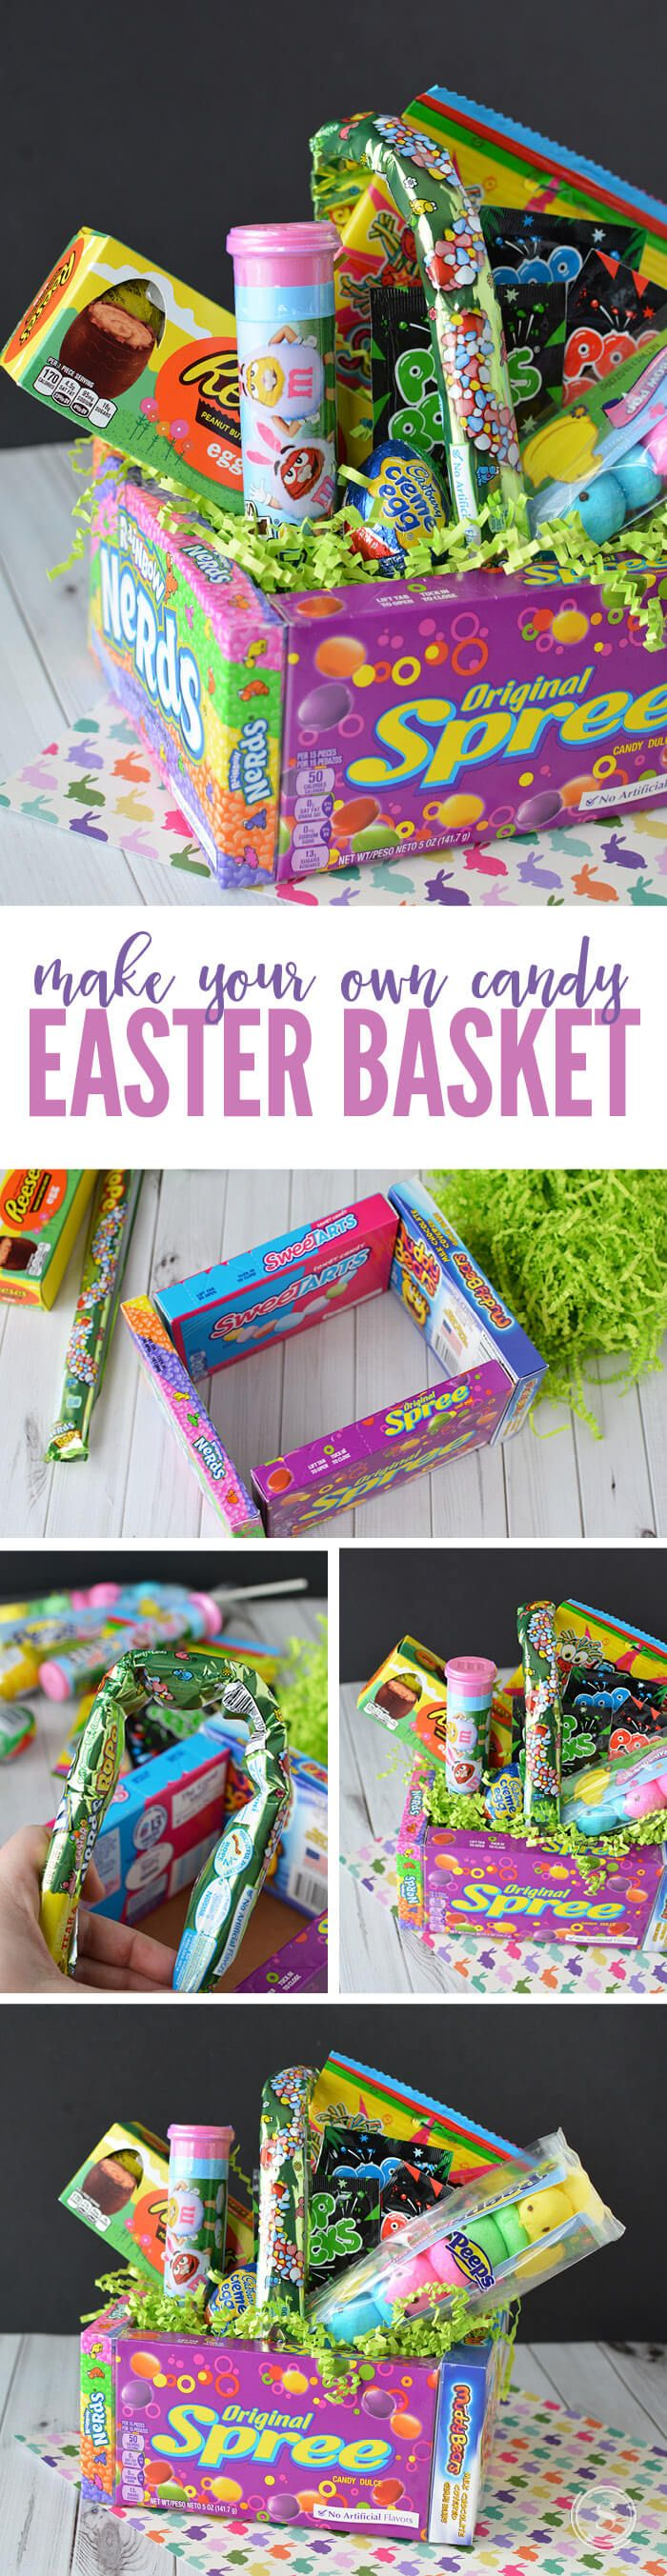 570 best gifts images on pinterest gift ideas boyfriend gift diy candy easter basket easy easter idea for teachers friends or kids negle Image collections